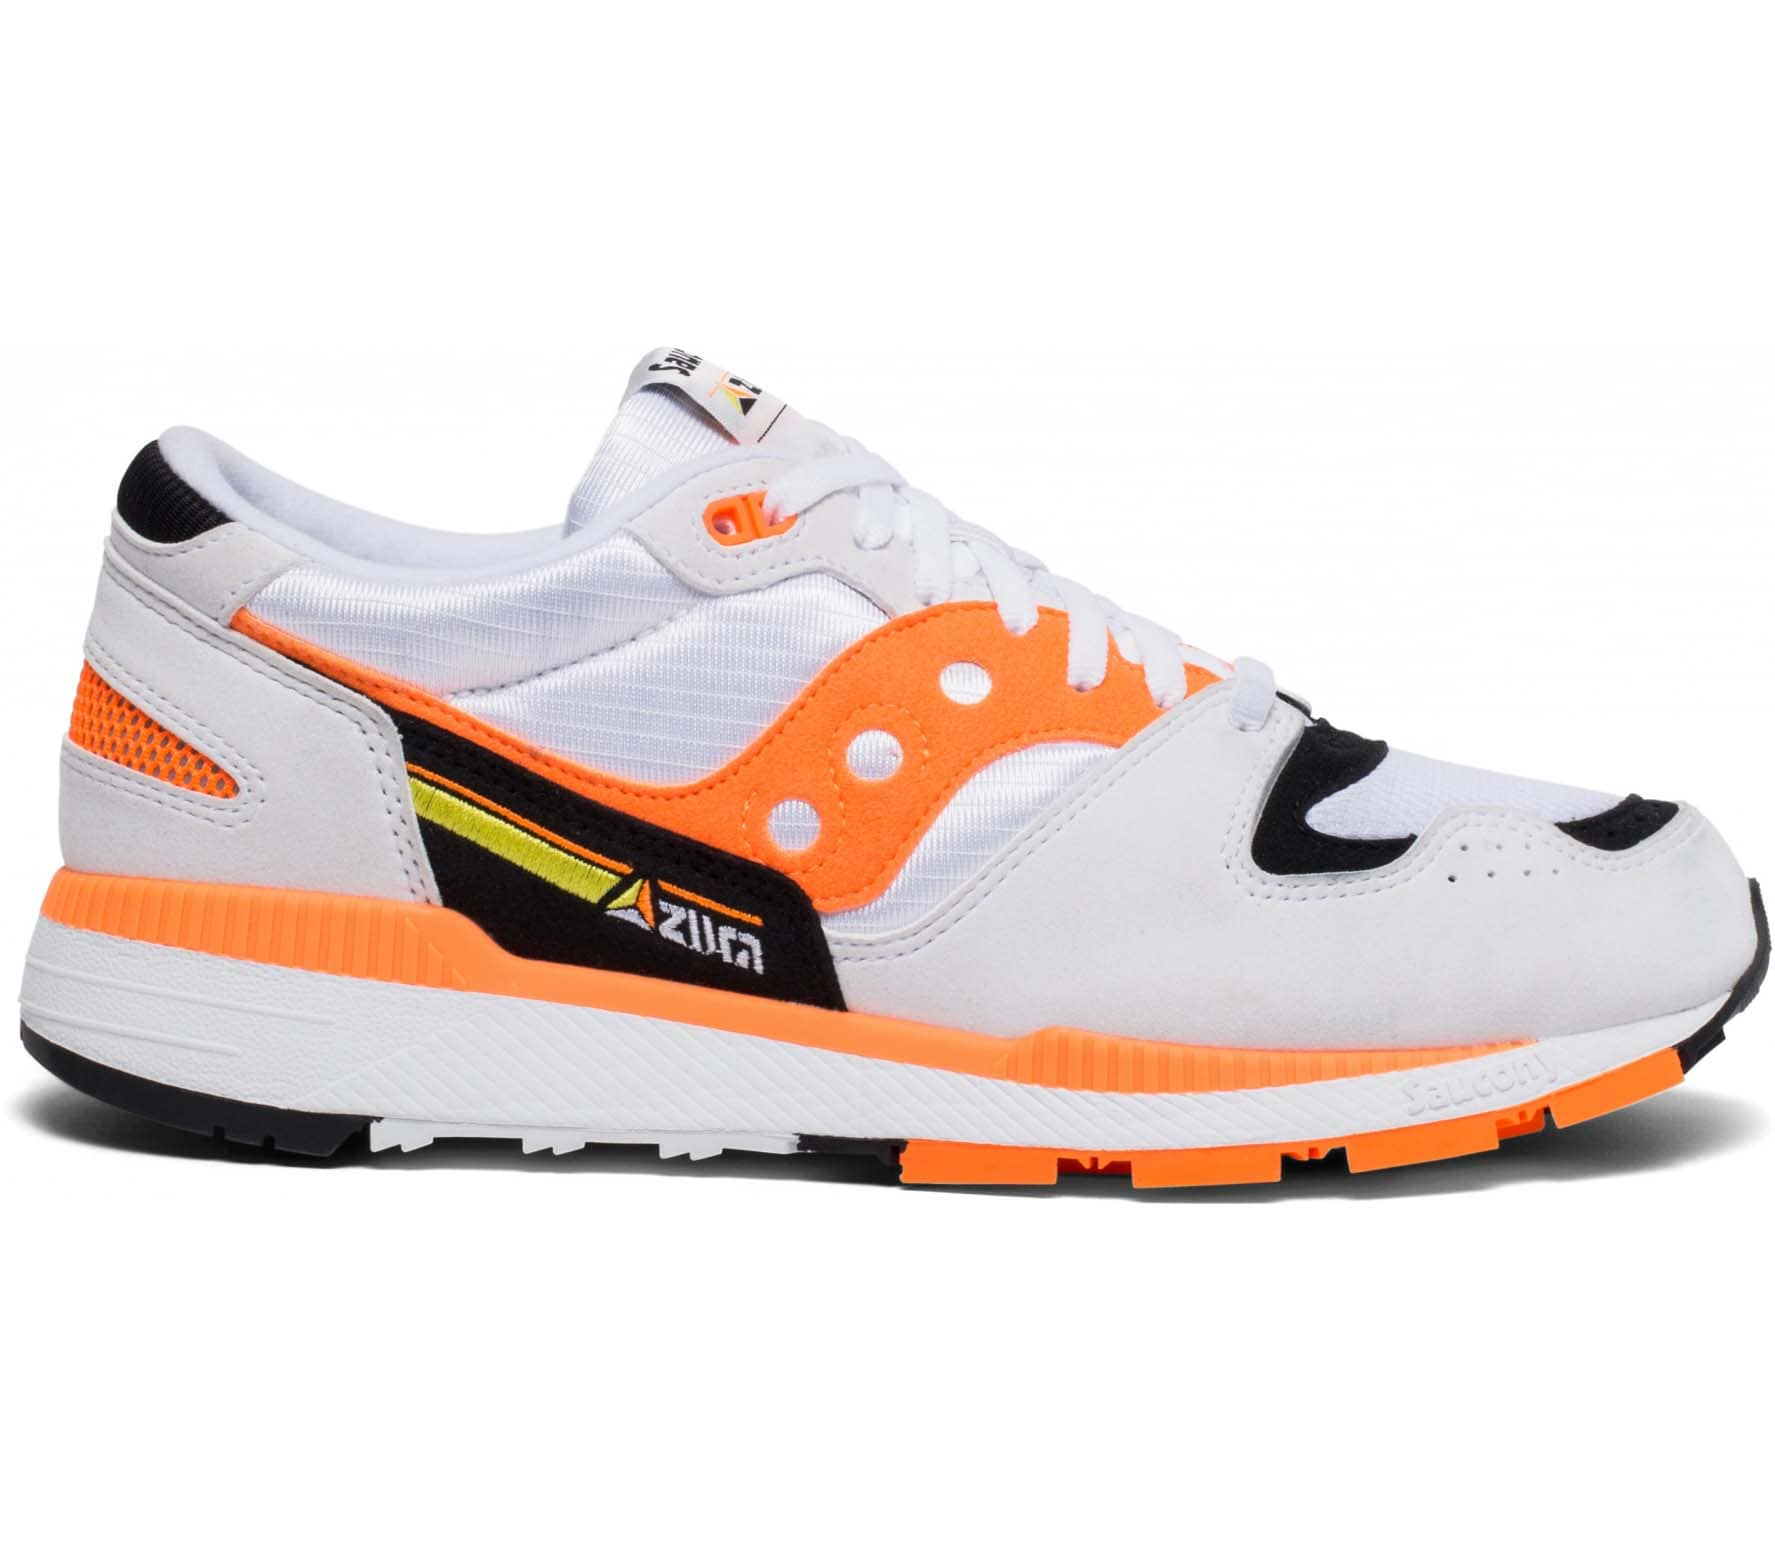 Azura Sneaker (weiß/orange)